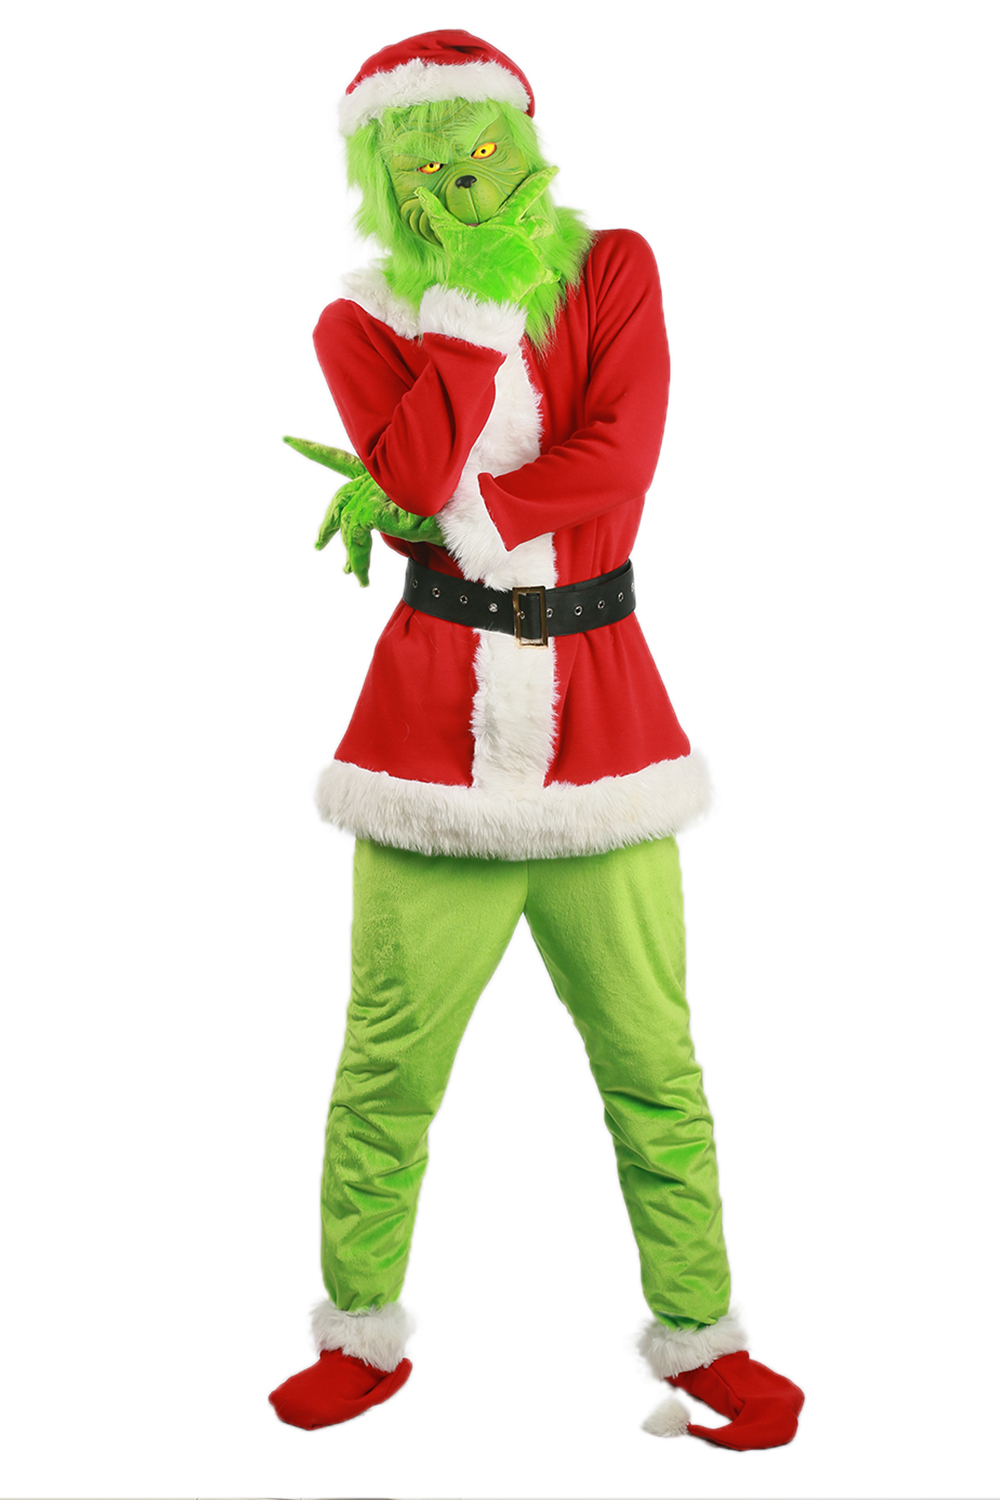 grinch stole christmas movie online - How The Grinch Stole Christmas Movie Online